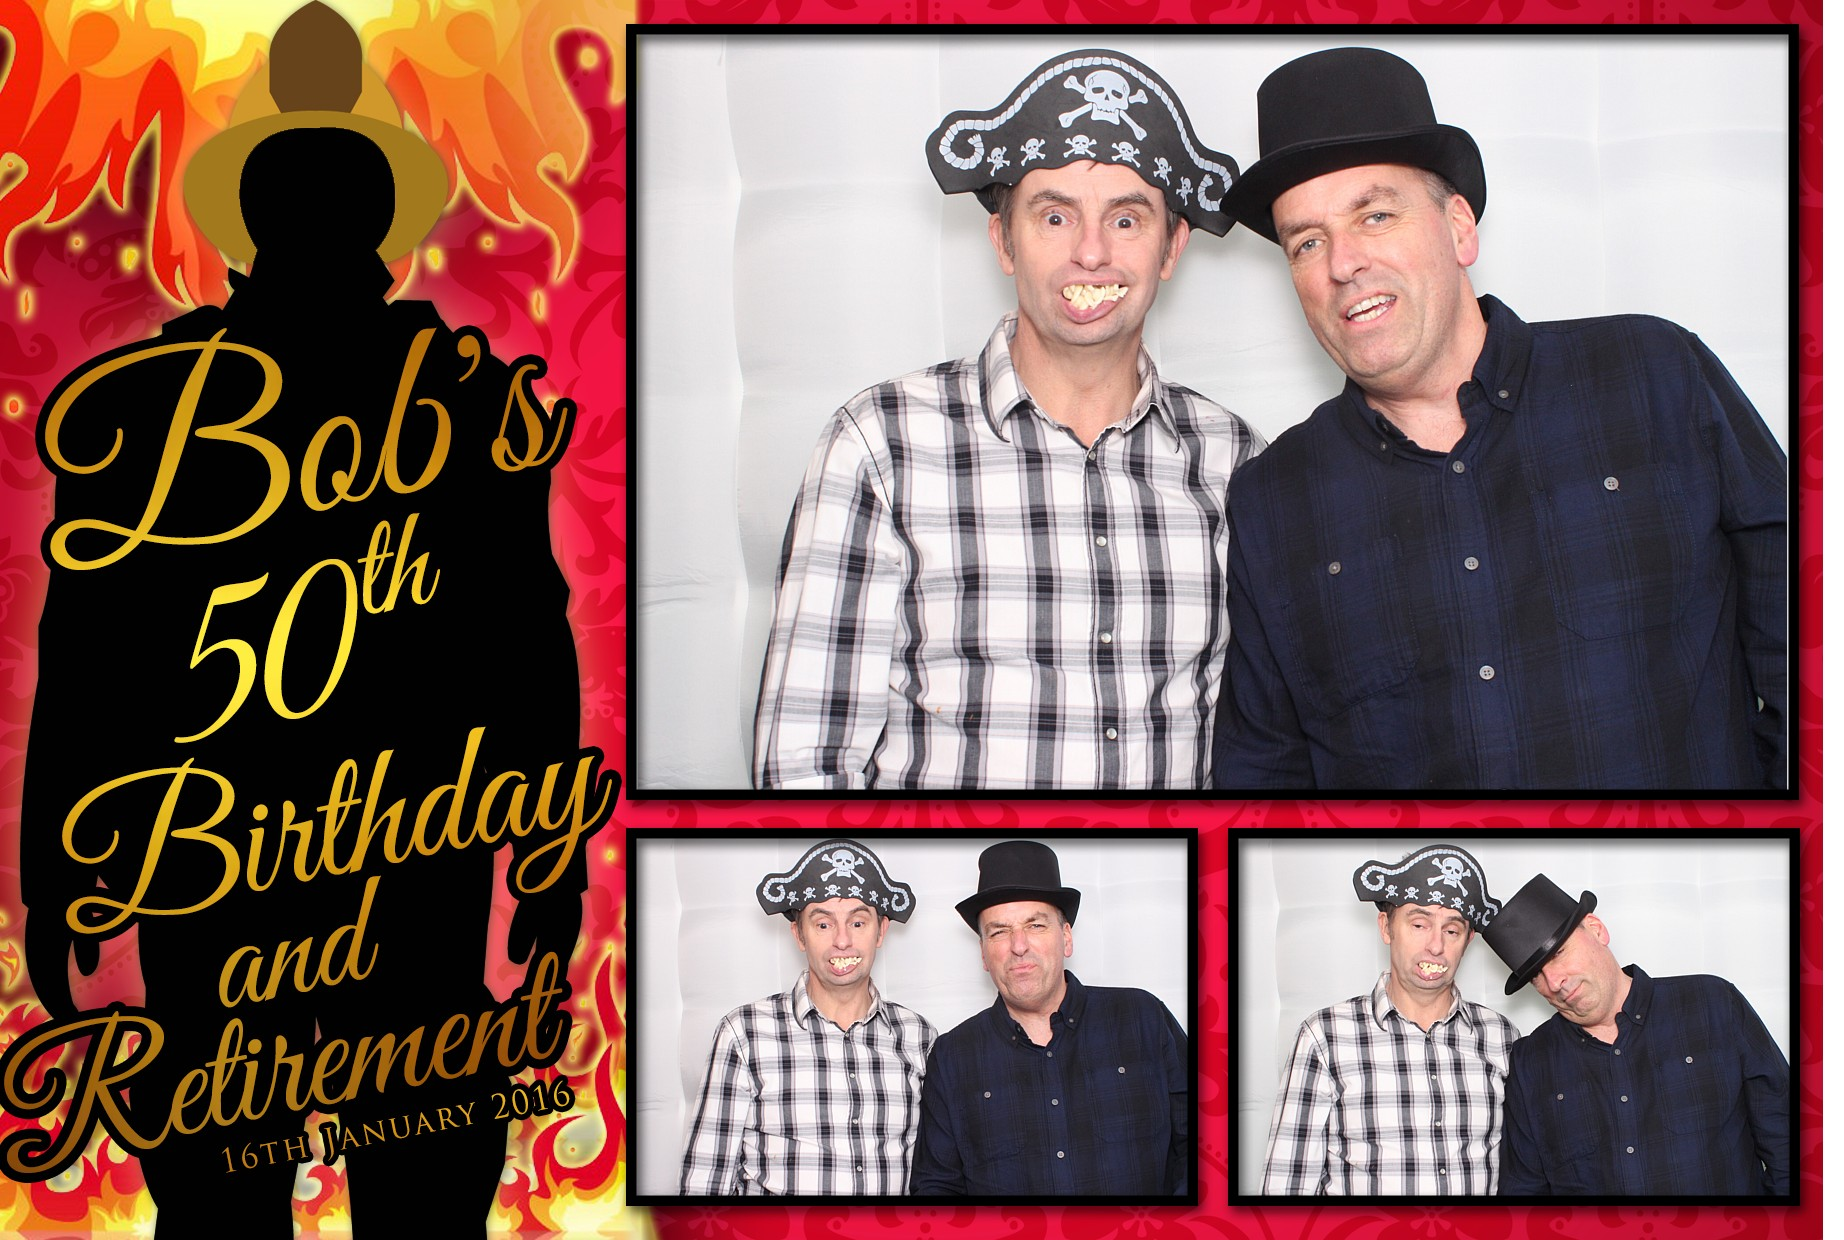 VIP Photo Booth - Bob's 50th!